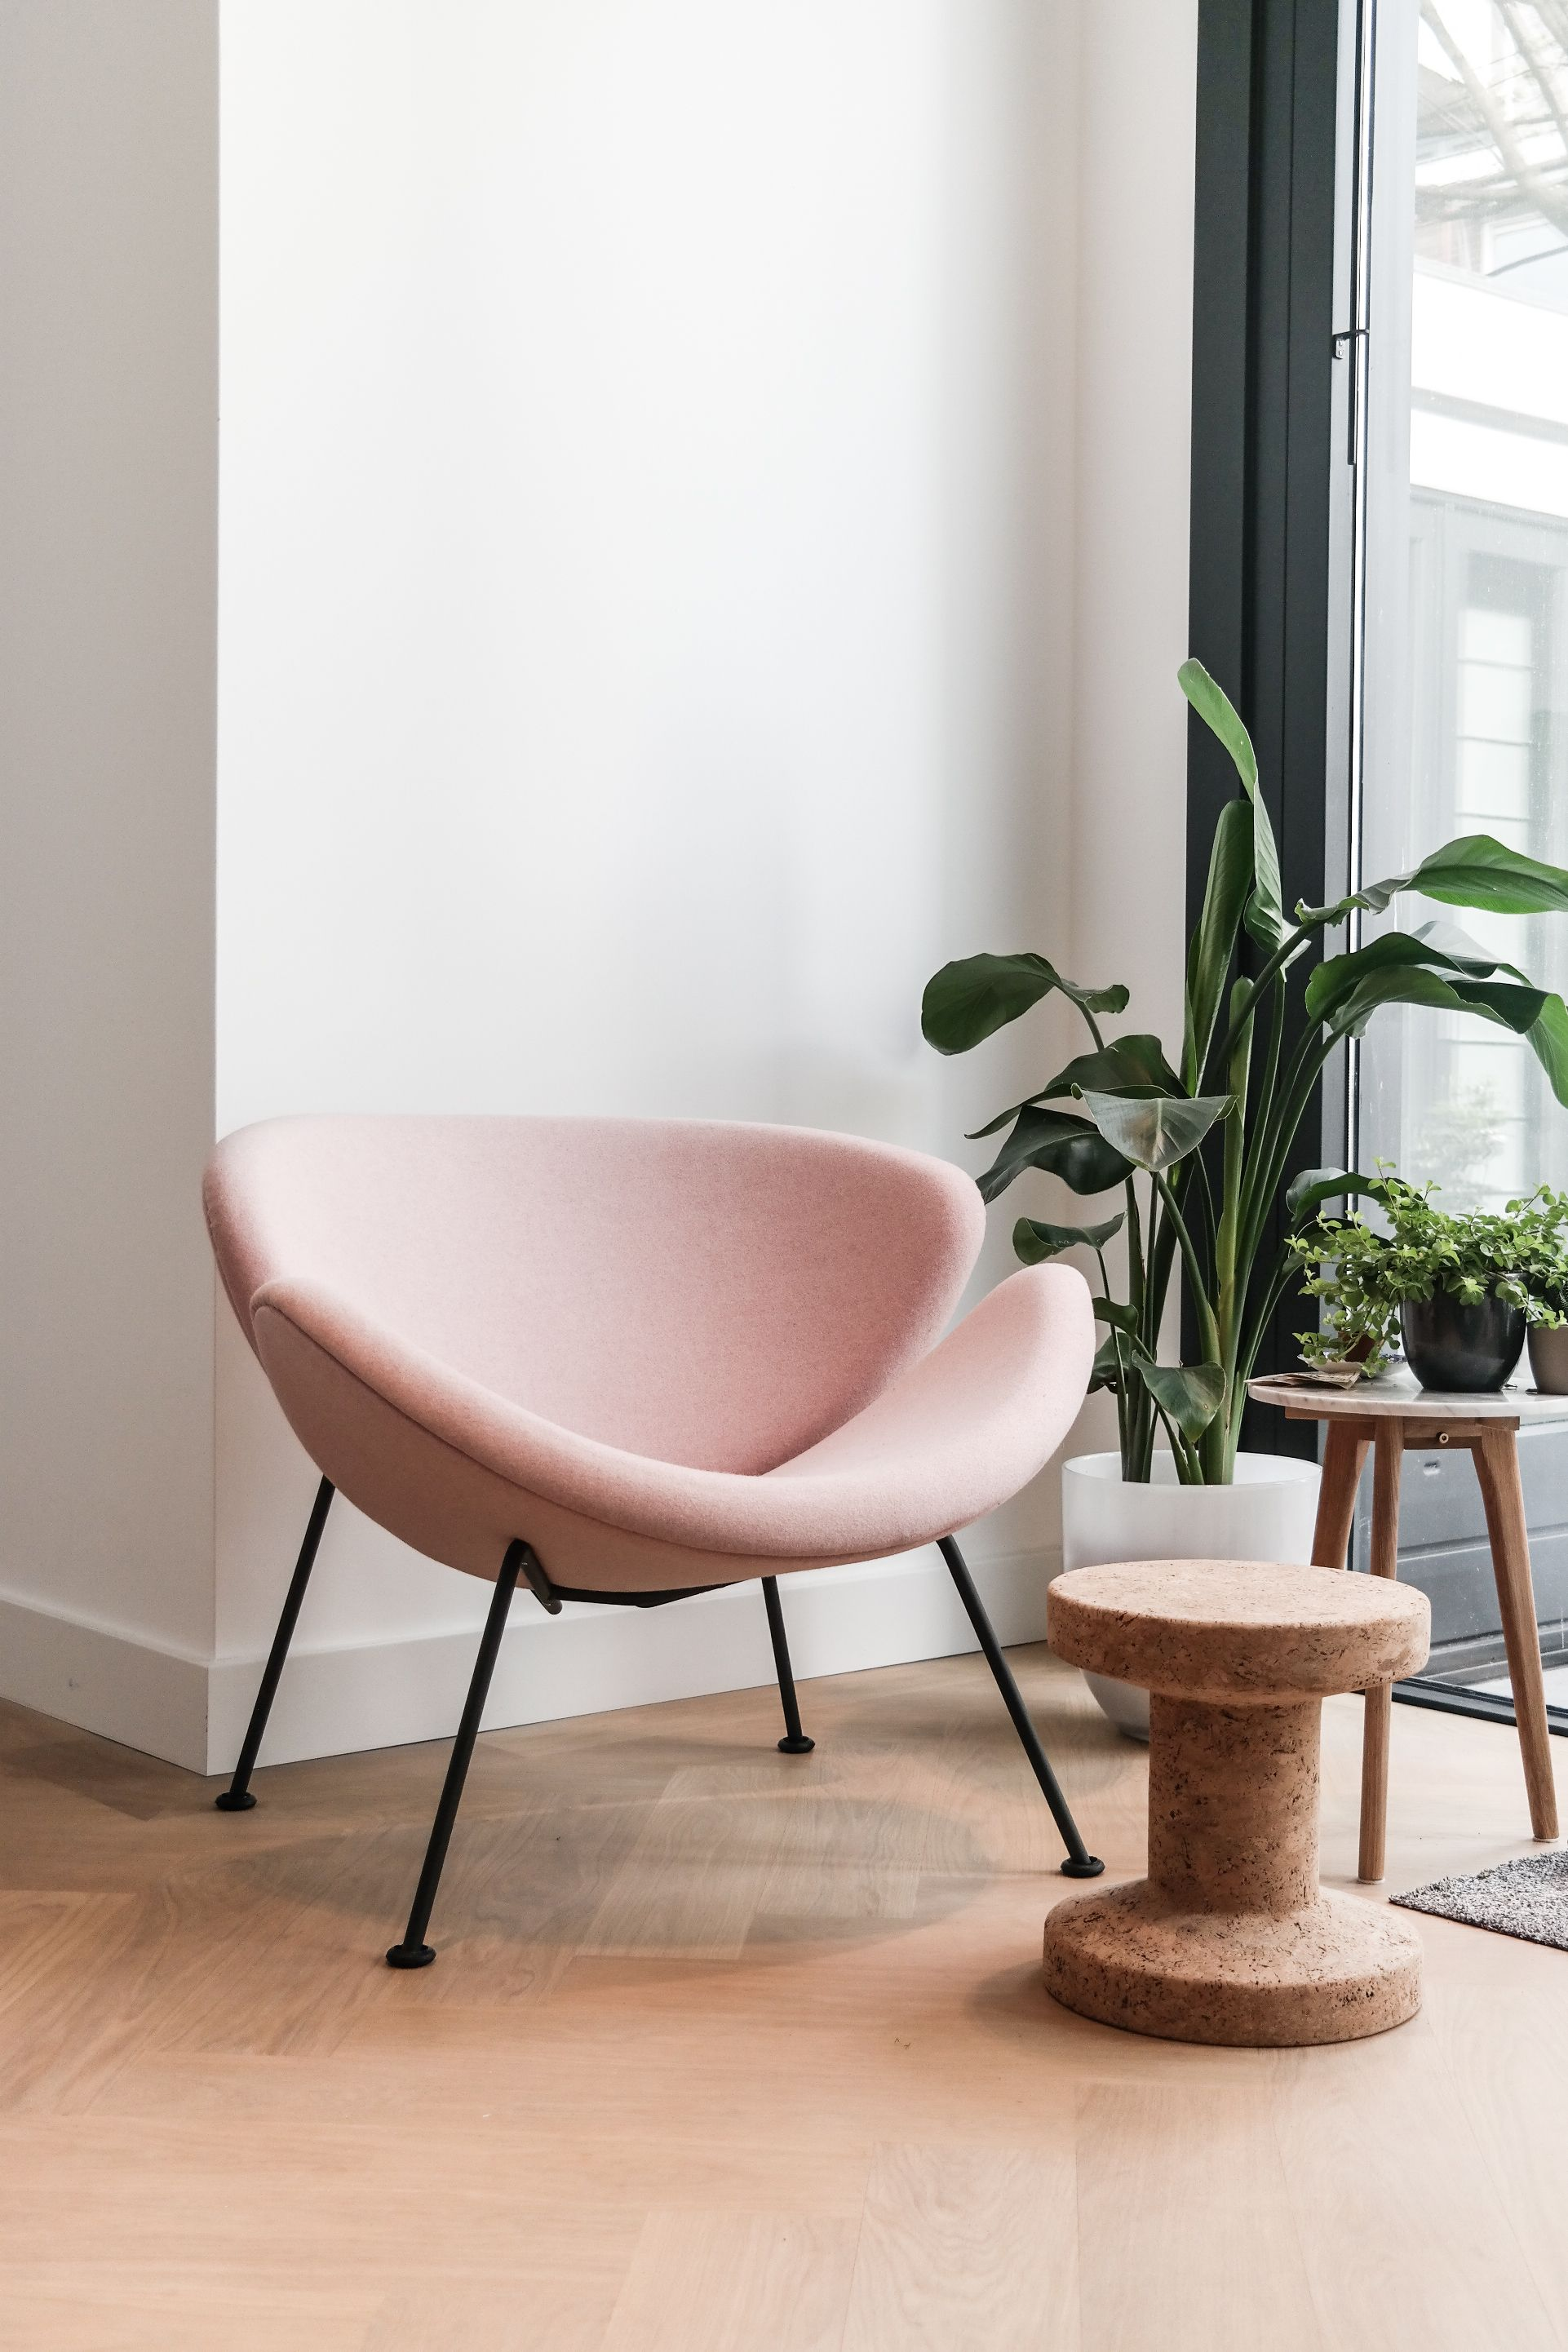 8 Exciting Upholstered Chairs For A Luxury Interior | Modern chairs ...